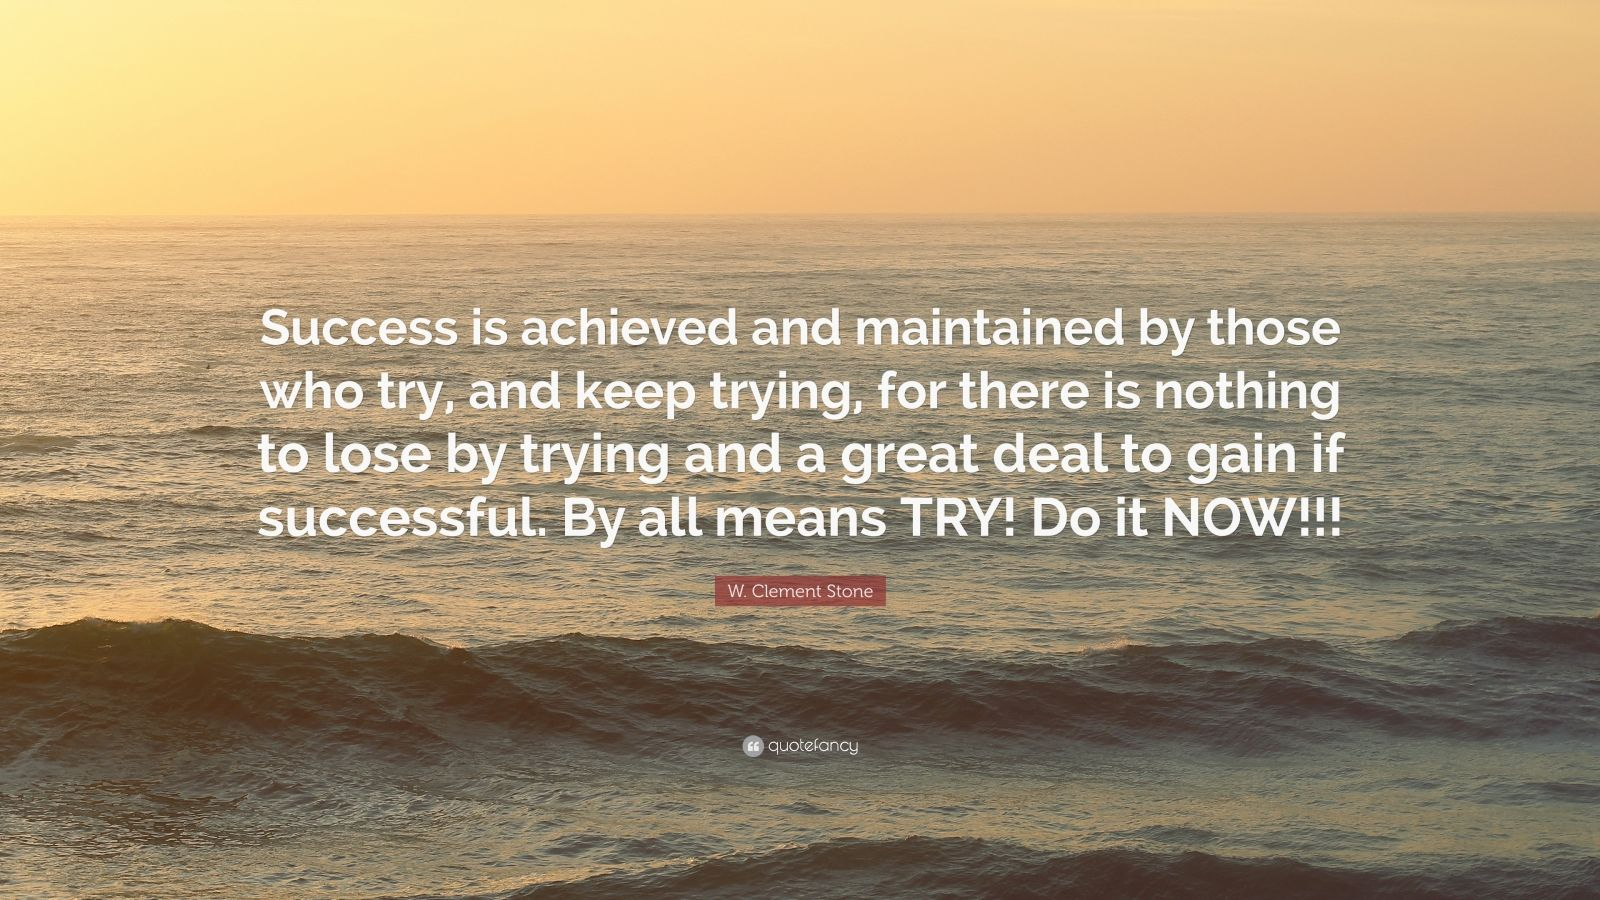 """W. Clement Stone Quote: """"Success is achieved and maintained by those who try, and keep trying, for there is nothing to lose by trying and a great deal to gain if successful. By all means TRY! Do it NOW!!!"""""""